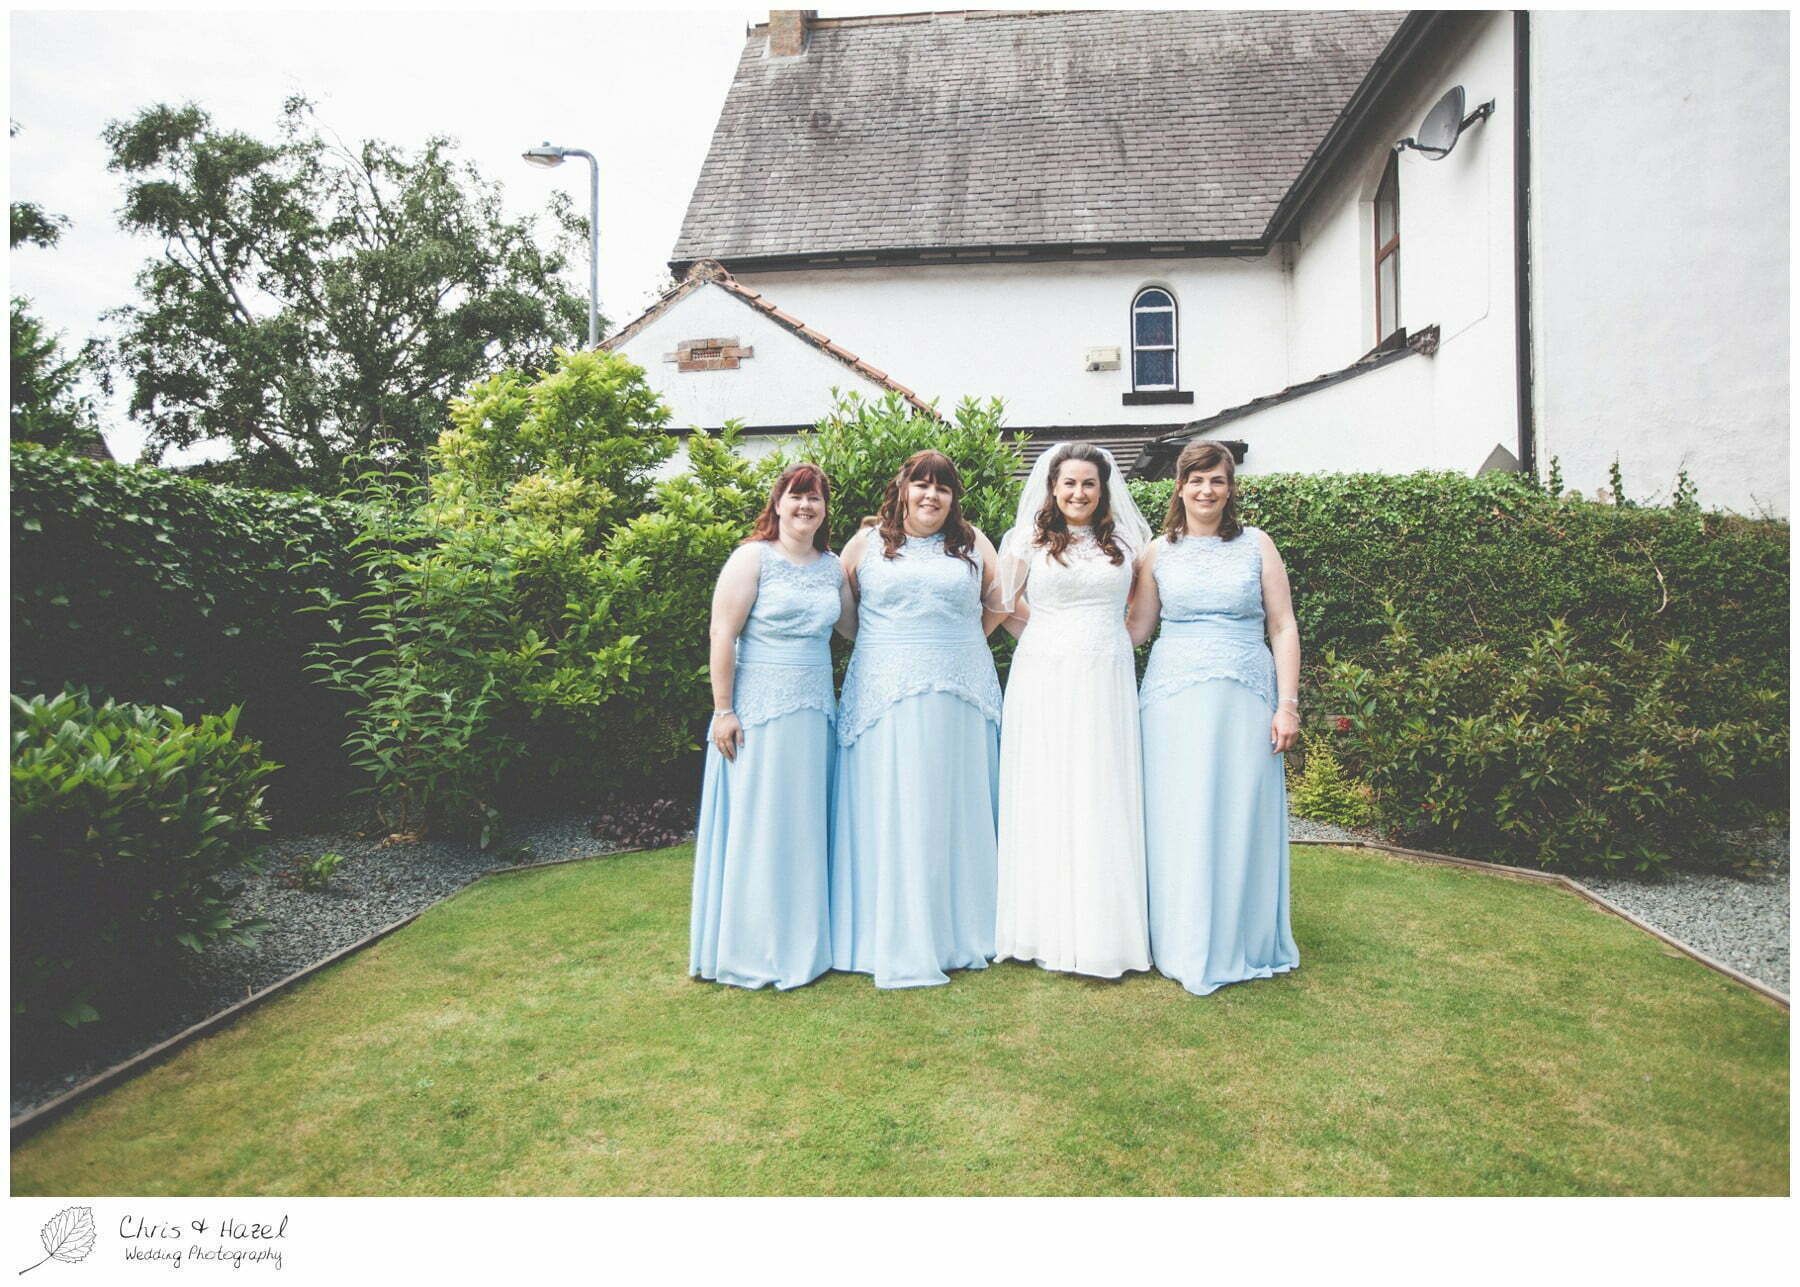 bride with bridesmaids, wedding, south milford Wedding Photographer, the engine shed, Wedding Photography wetherby, Chris and Hazel Wedding Photography, stevie pollard, stevie standerline, paul standerline,